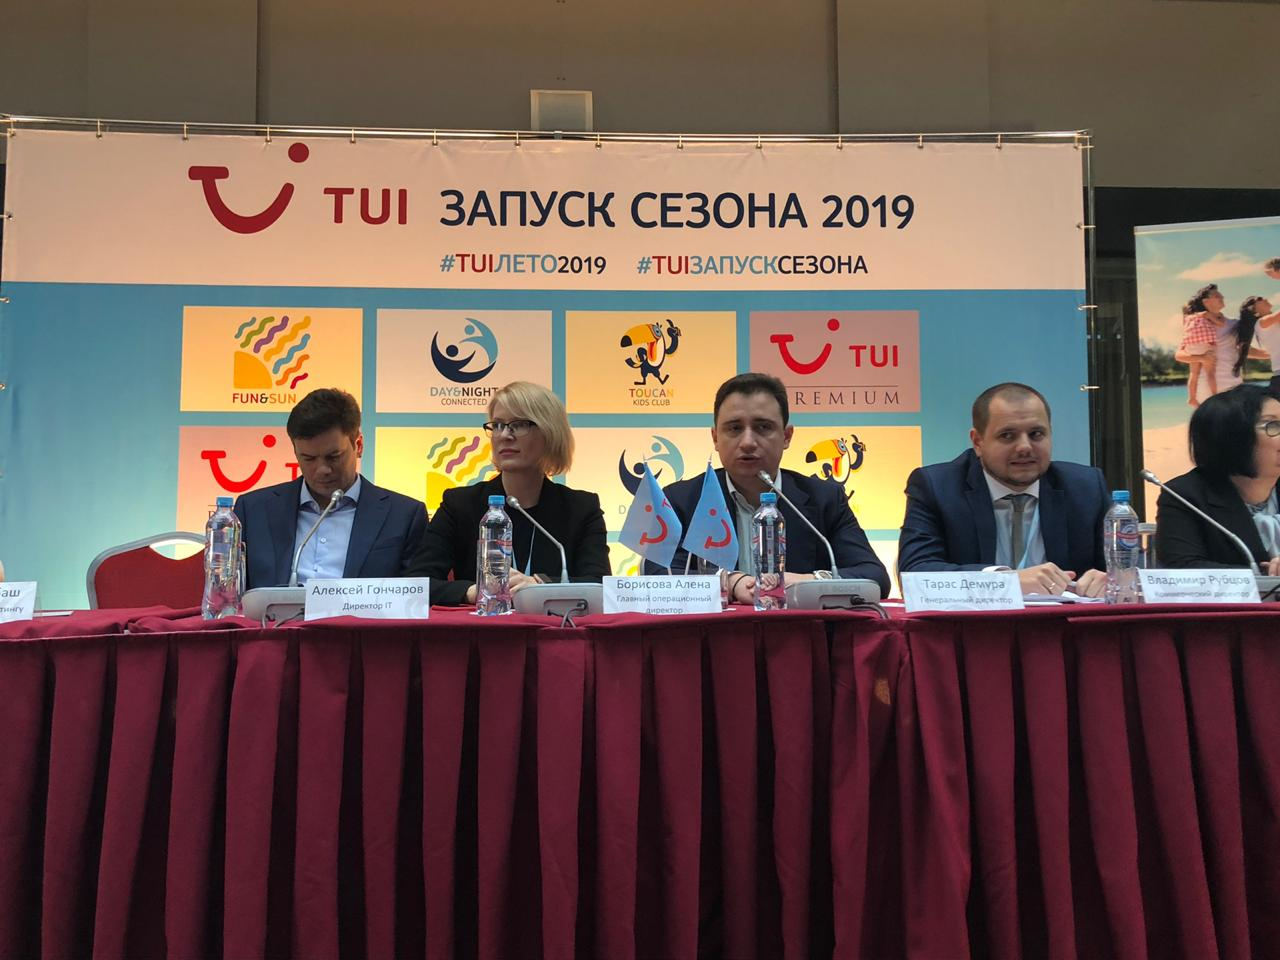 TUI Russia has revealed the plans for the summer 2019